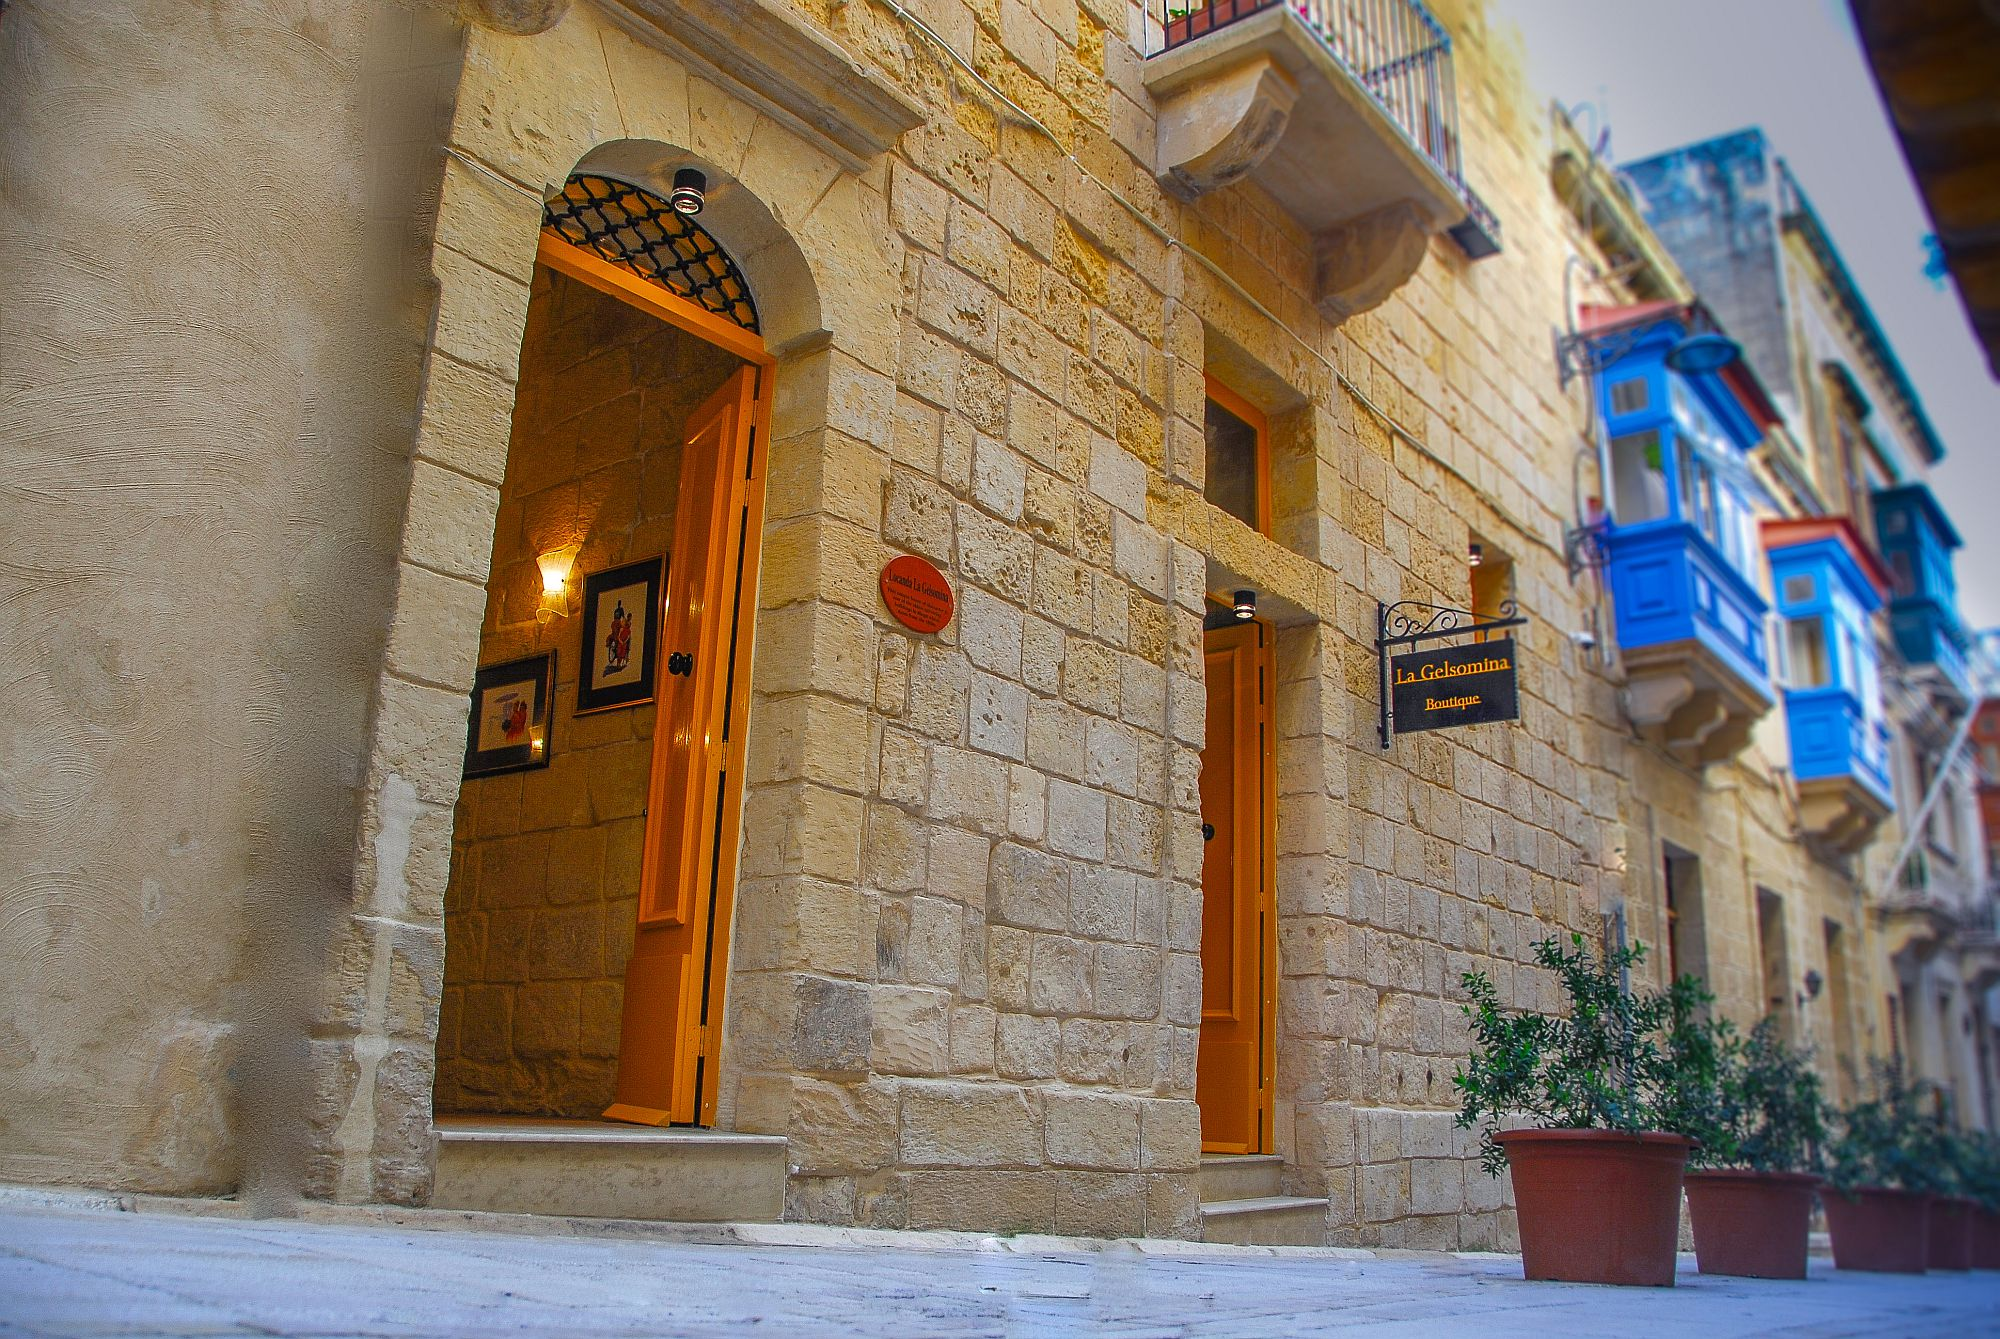 Street facade of the luxury boutique hotel in Malta has a timeless, classic appeal